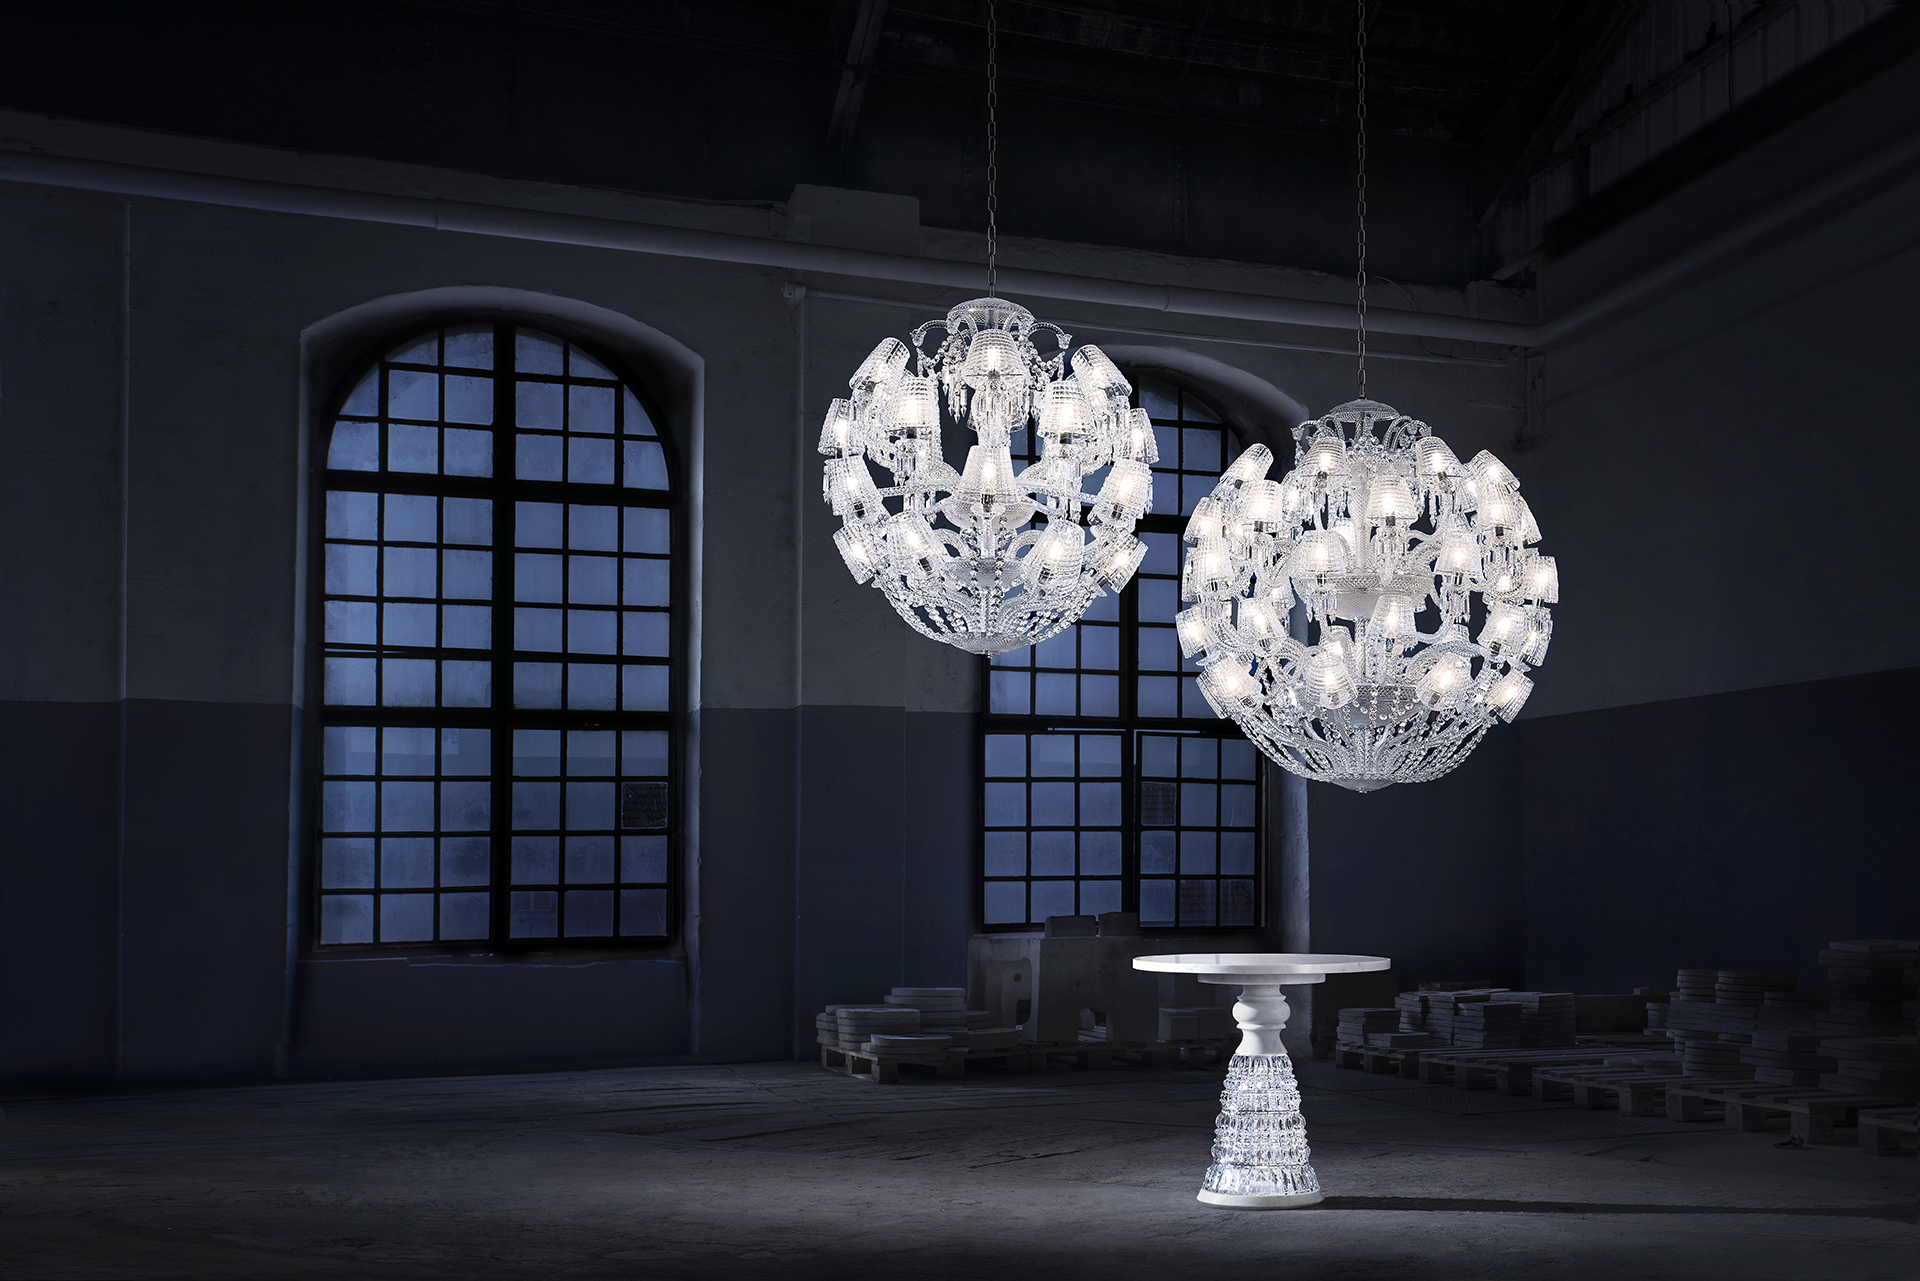 Baccarat - Le Roi Soleil, a contemporary touch of the iconic Zenith chandelier with its timeless and spherical shape